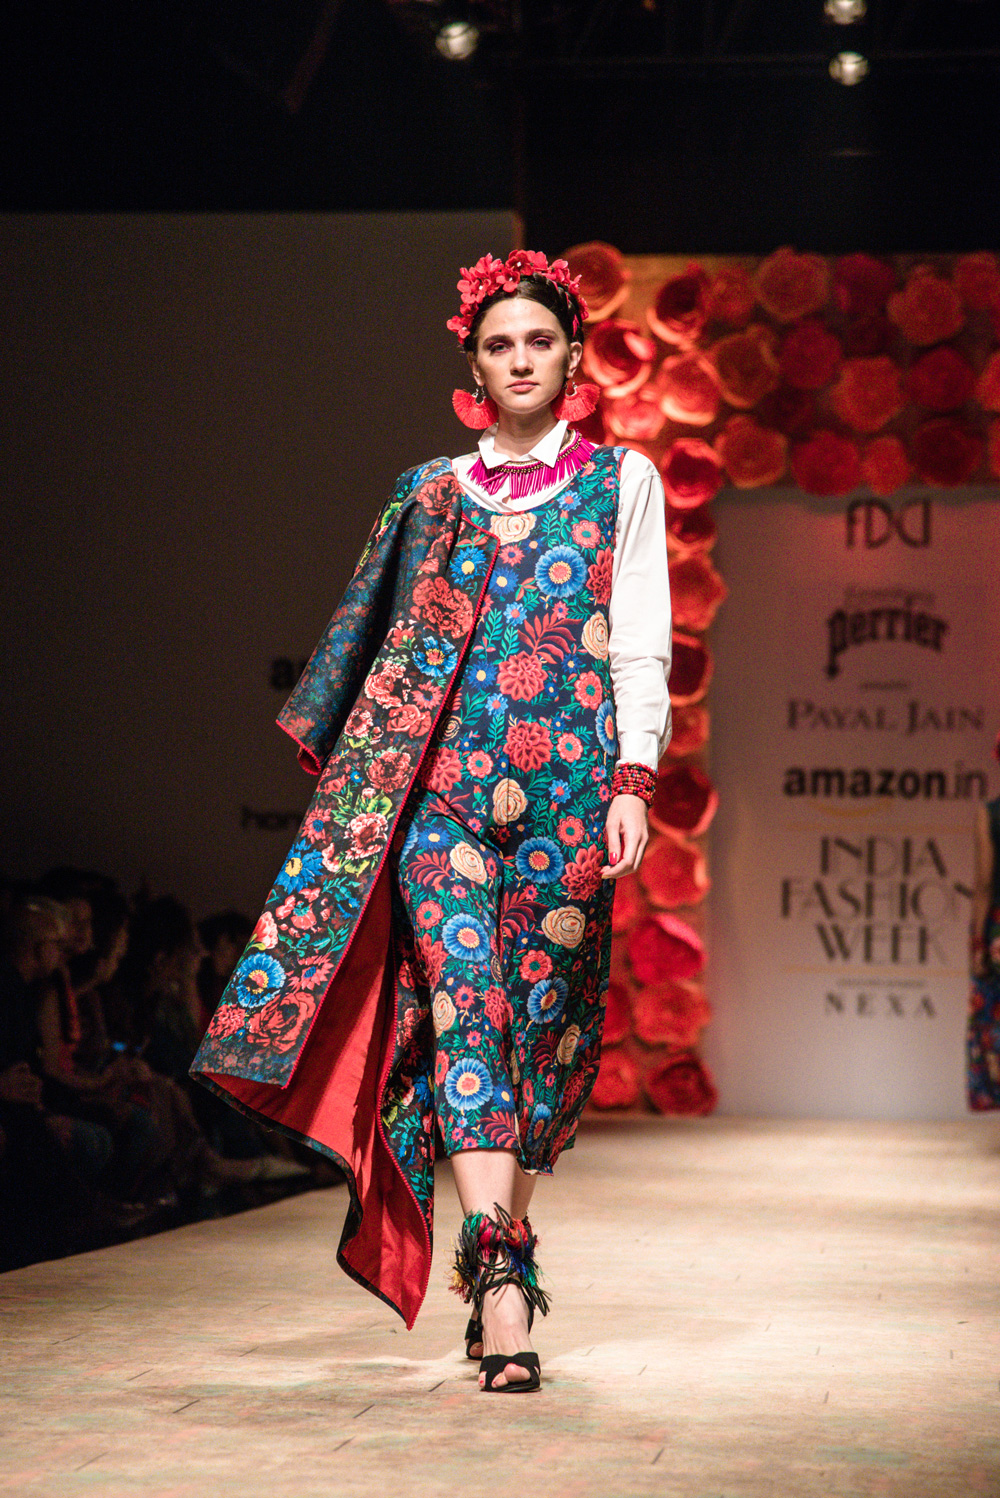 Payal Jain FDCI Amazon India Fashion Week Spring Summer 2018 Look 16